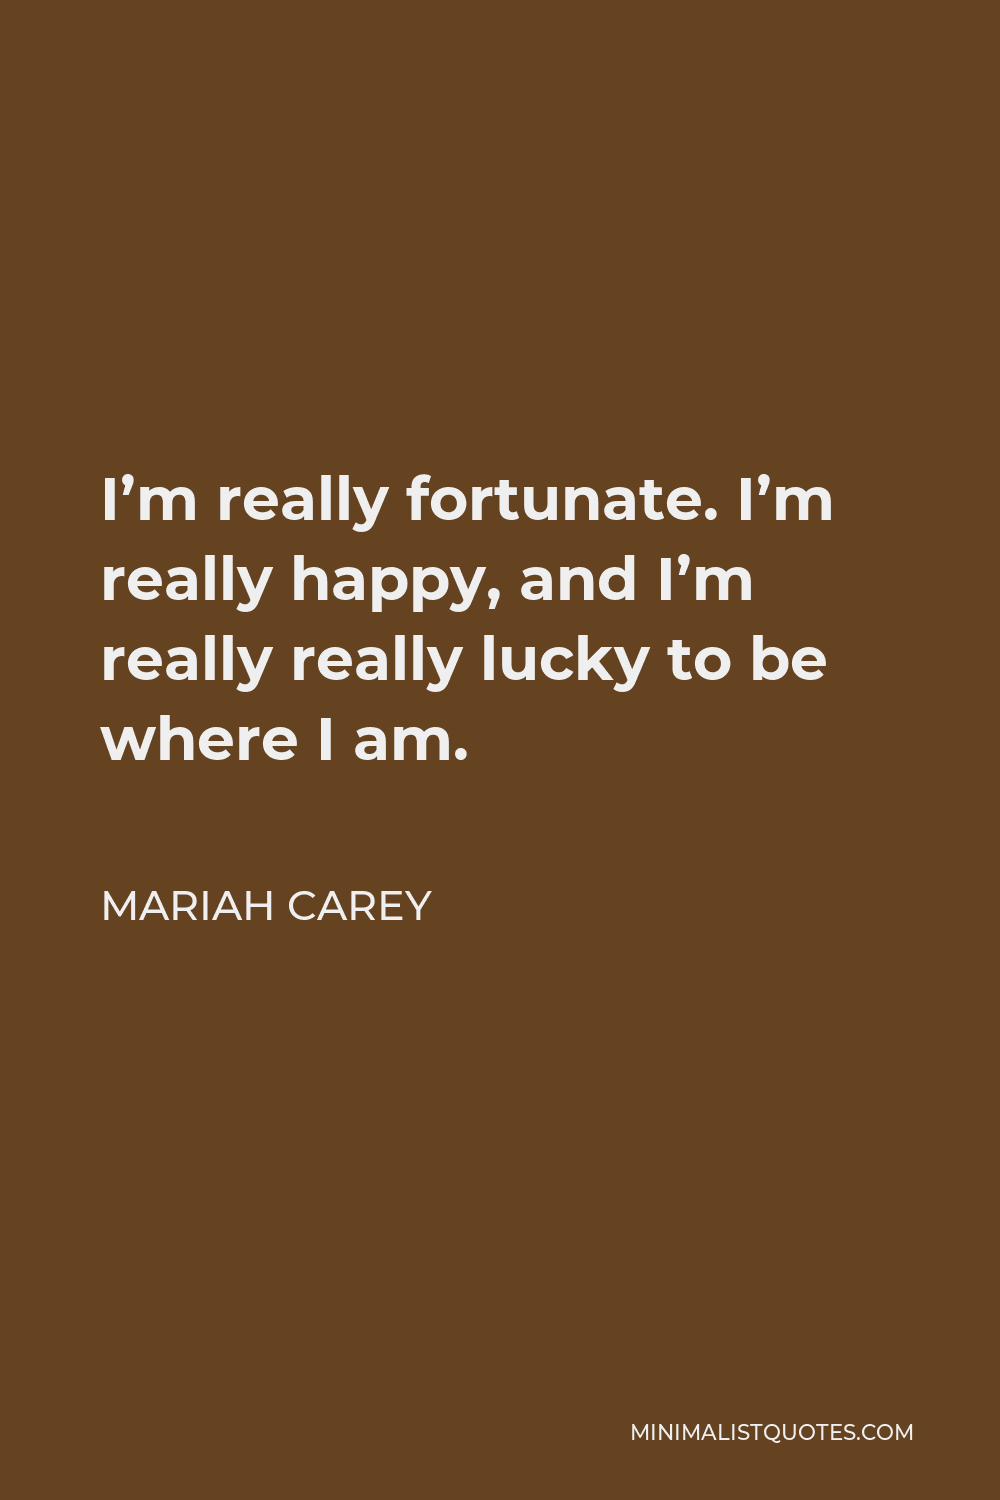 Mariah Carey Quote - I'm really fortunate. I'm really happy, and I'm really really lucky to be where I am.